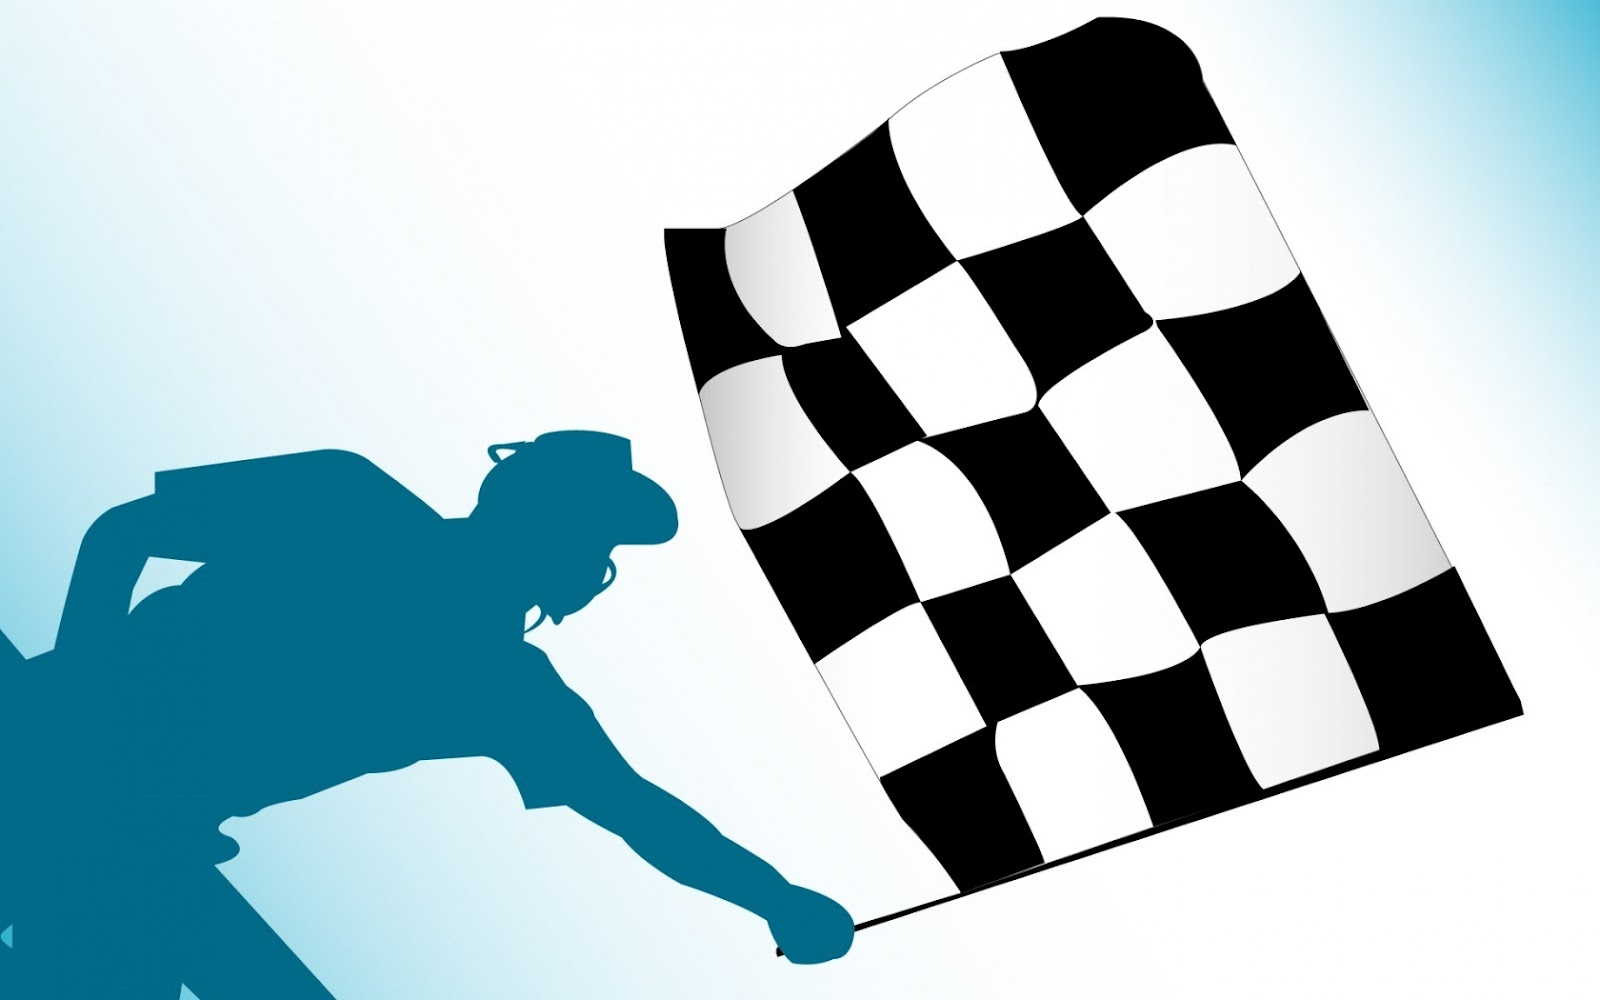 Racing clipart get ready Set IMGFLASH Go Go Set